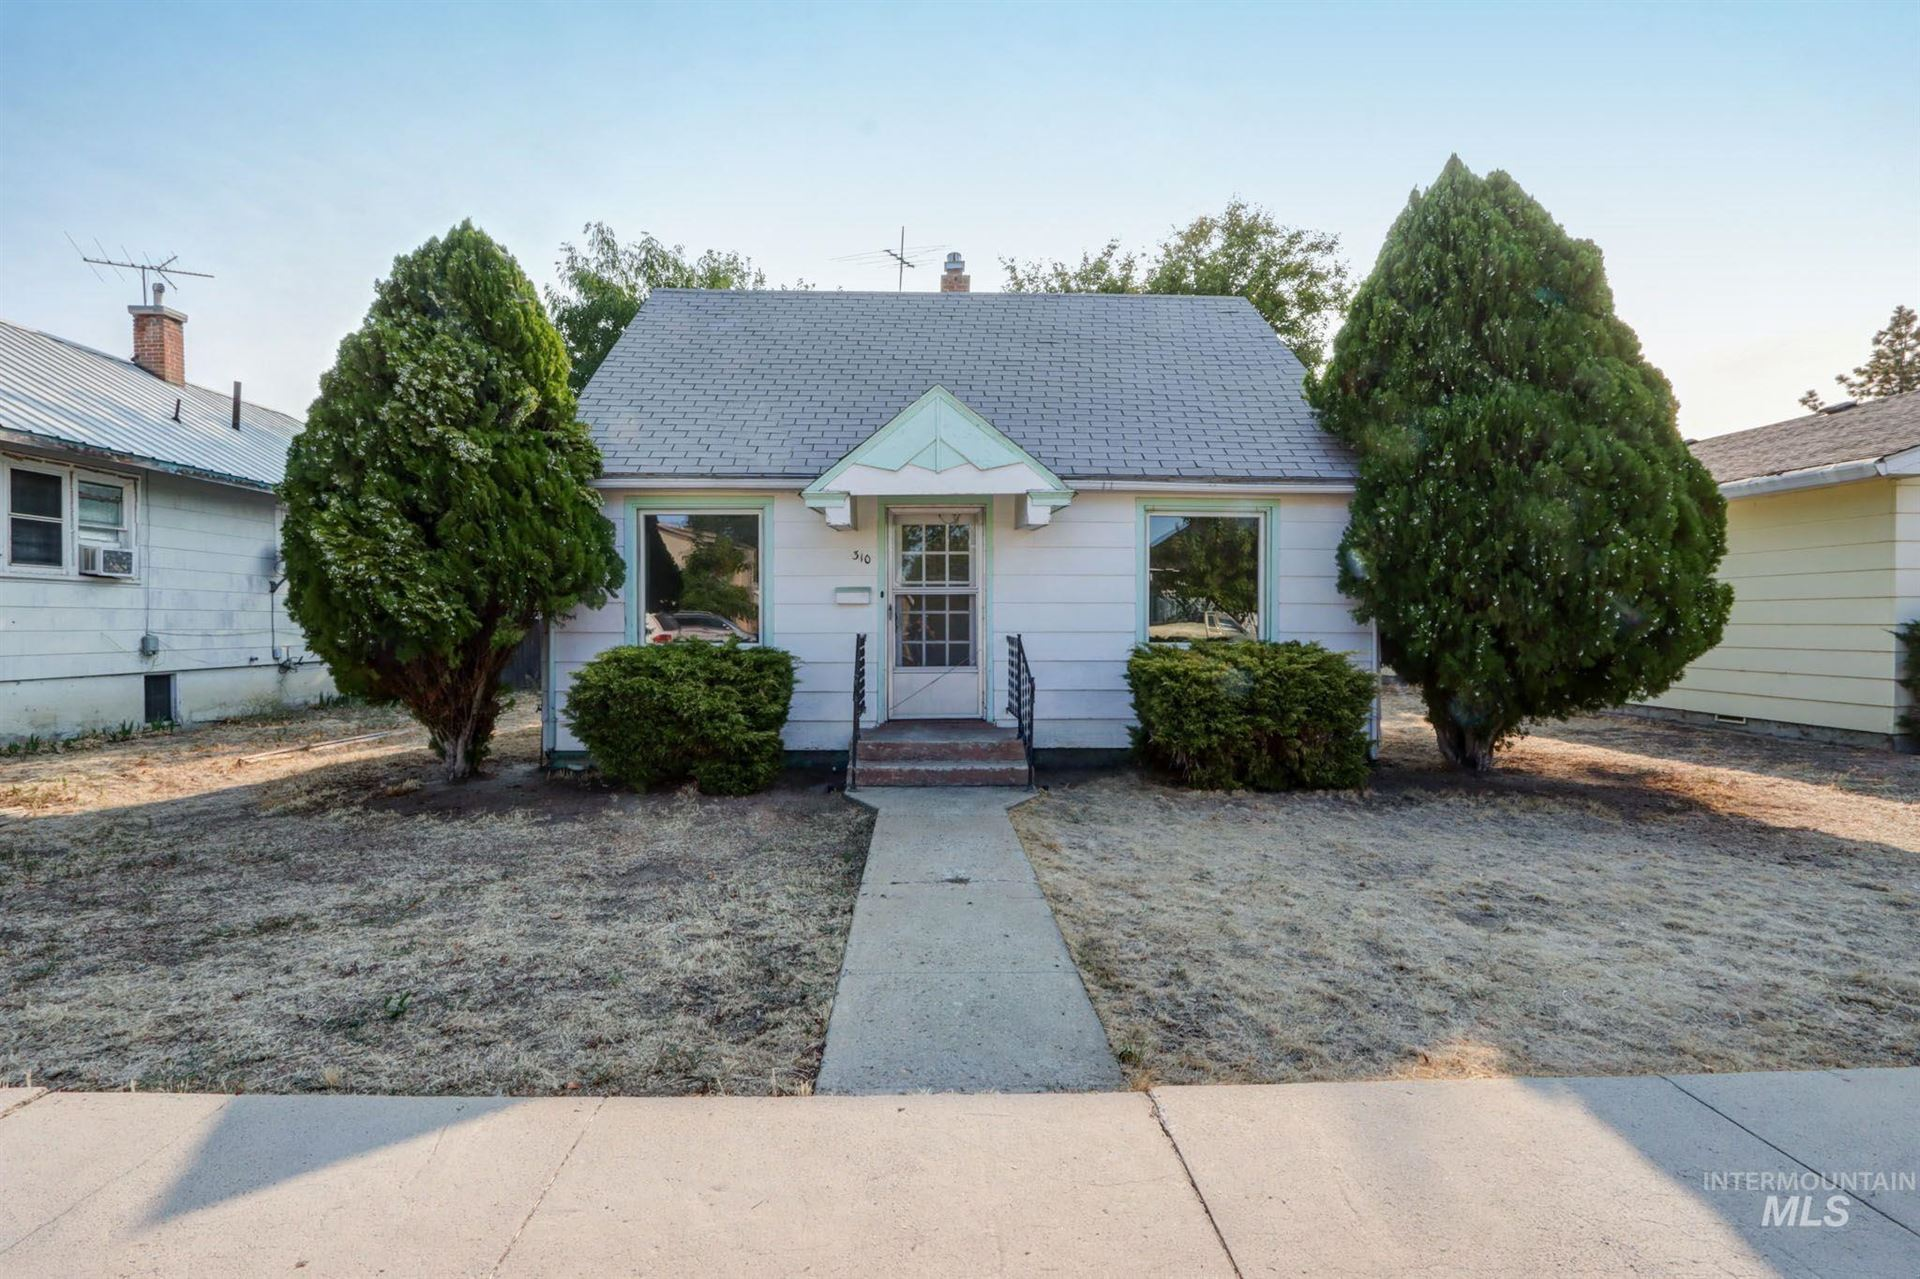 Photo of 310 S Commercial Ave, Emmett, ID 83617 (MLS # 98818132)